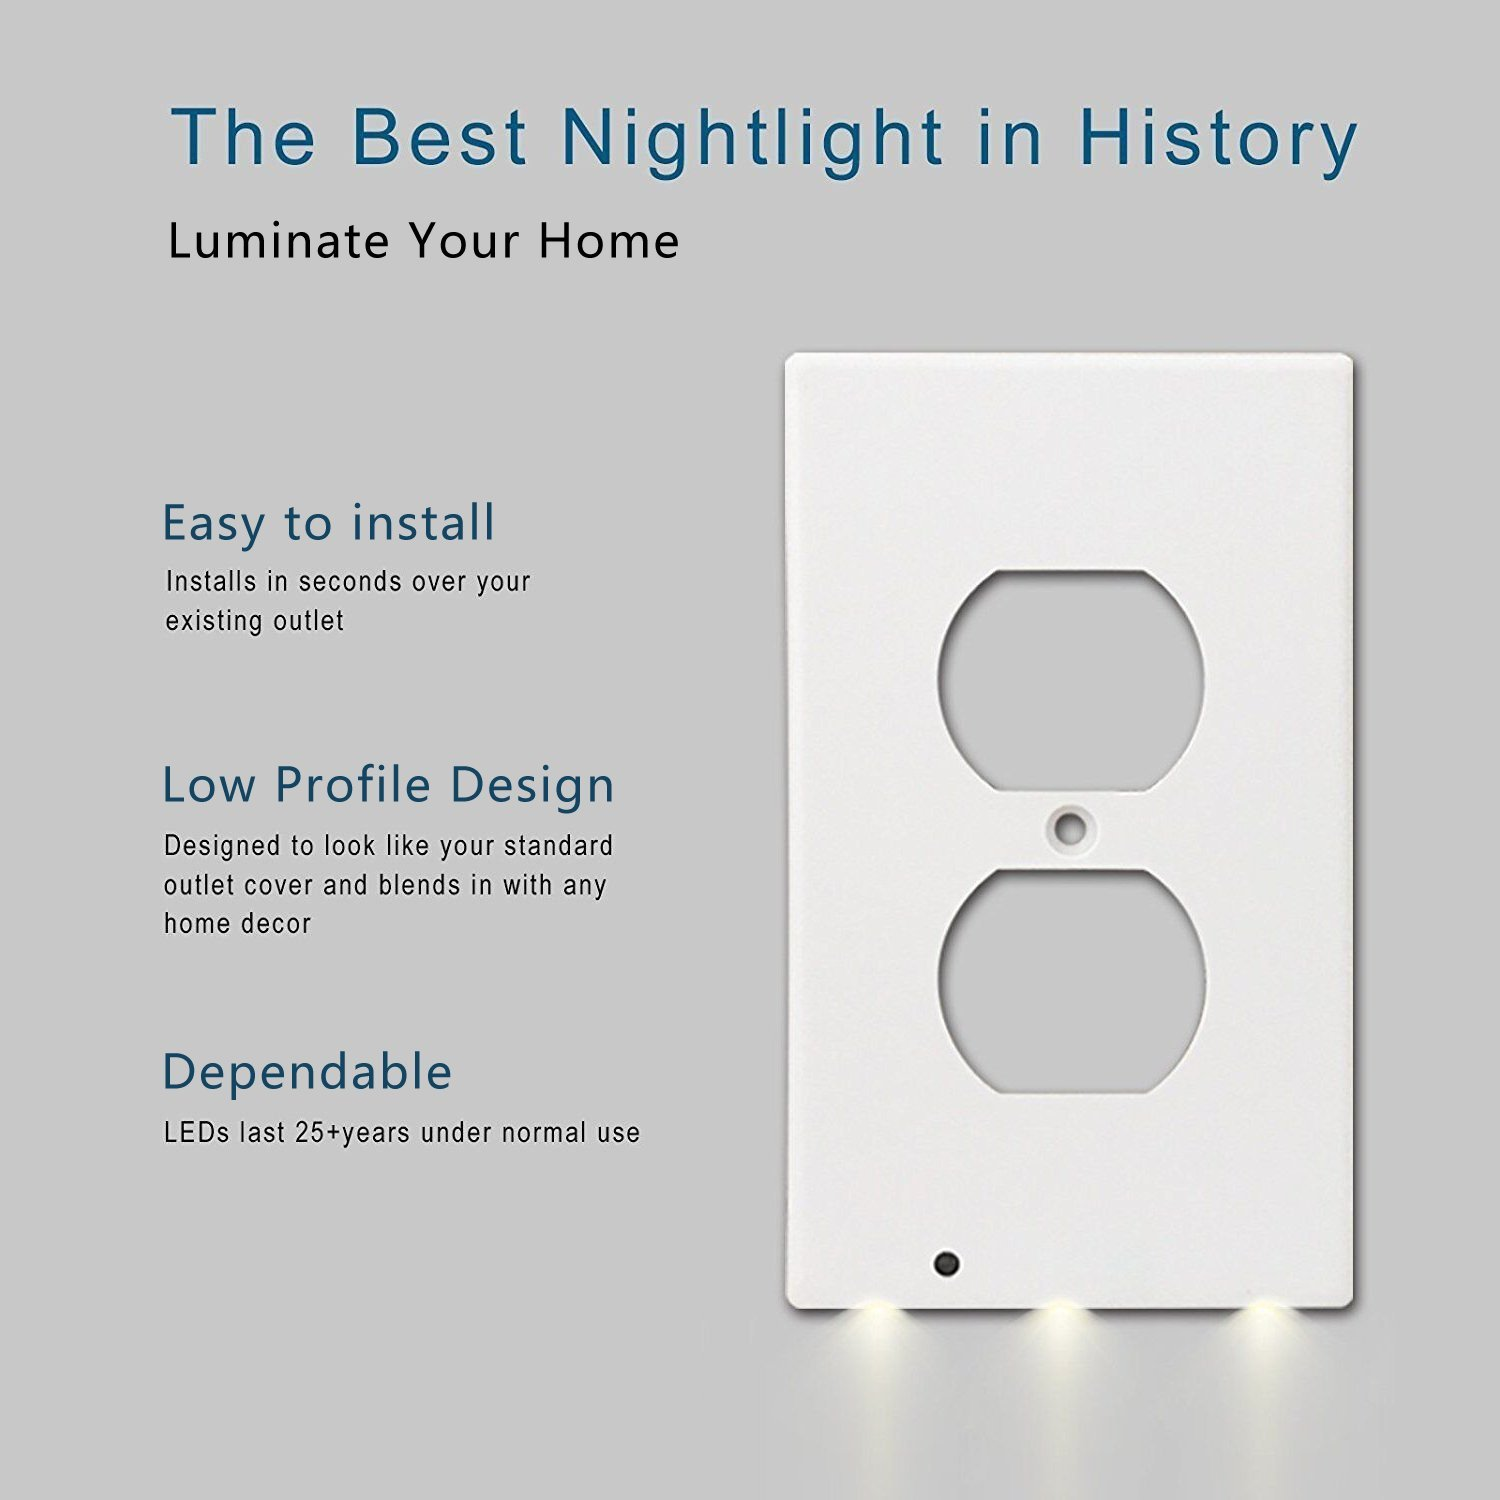 Exgreem GuideLight Wall Plates - Best Energy Saving LED Night Lights Wall Outlet Cover- Fireproof Material- No Batteries Or Wires, White (10 Pack Duplex)